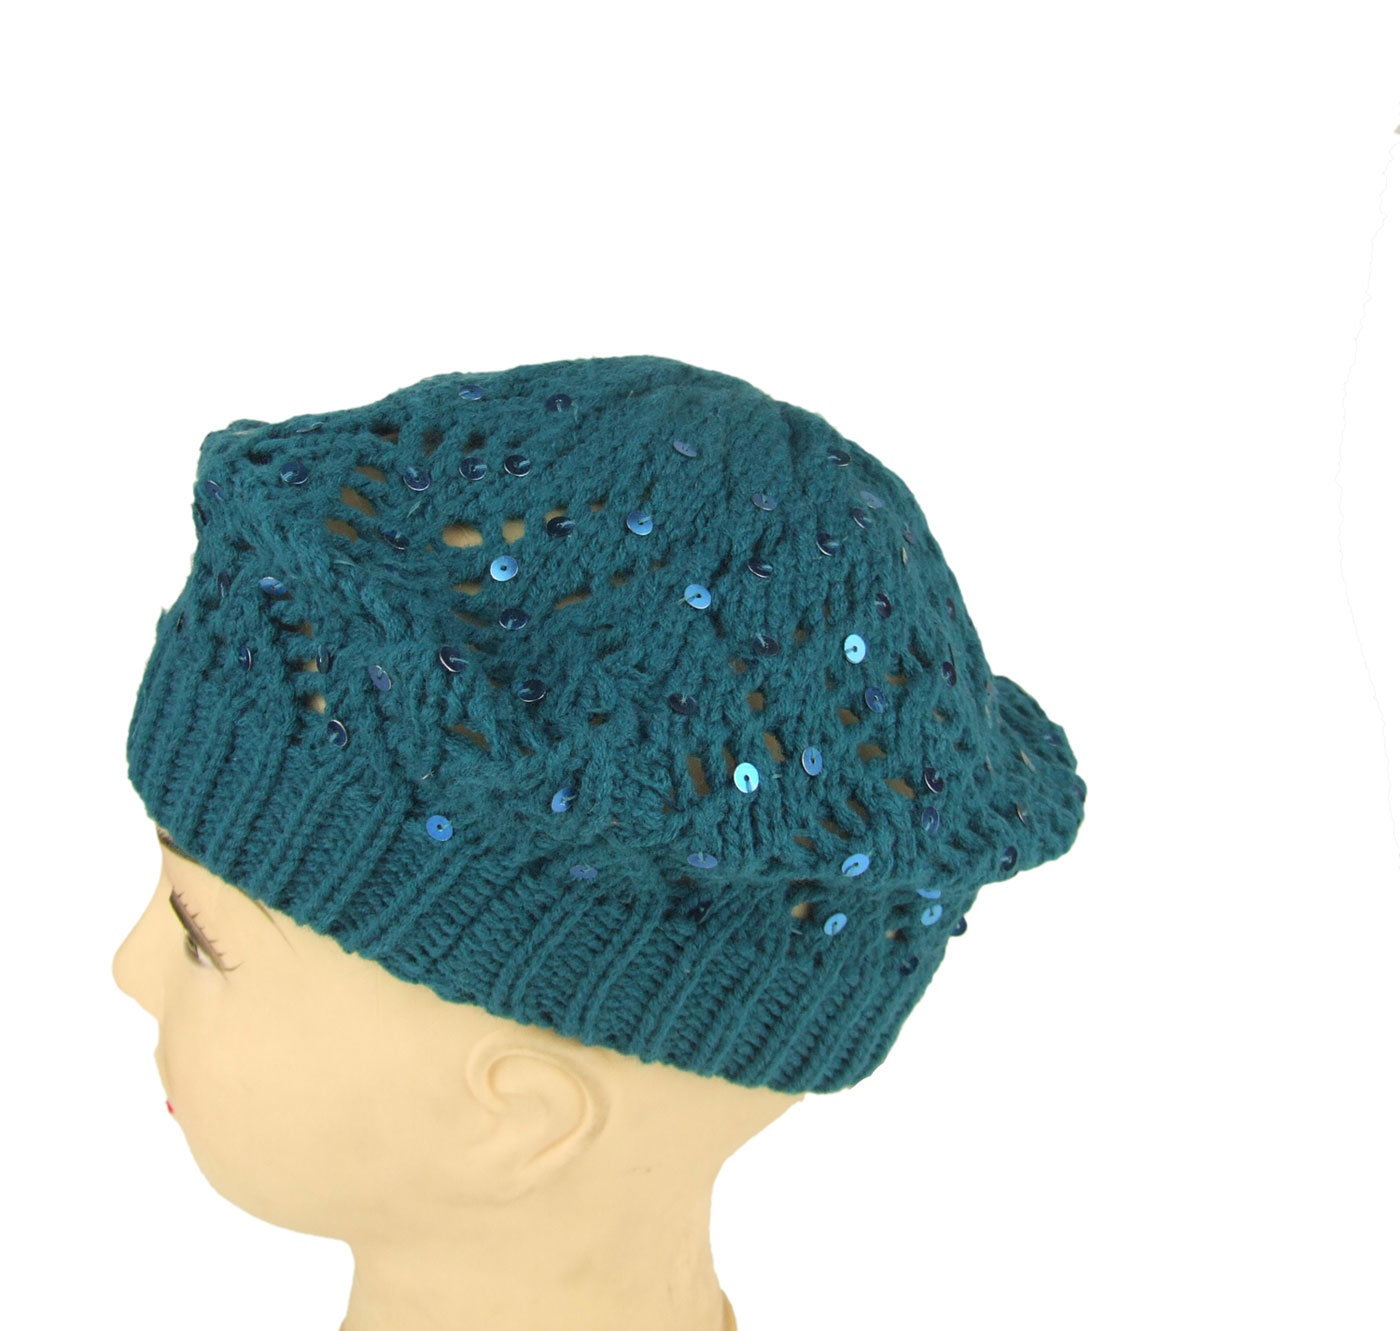 Beret Knit Hat Pattern   Catalog of Patterns